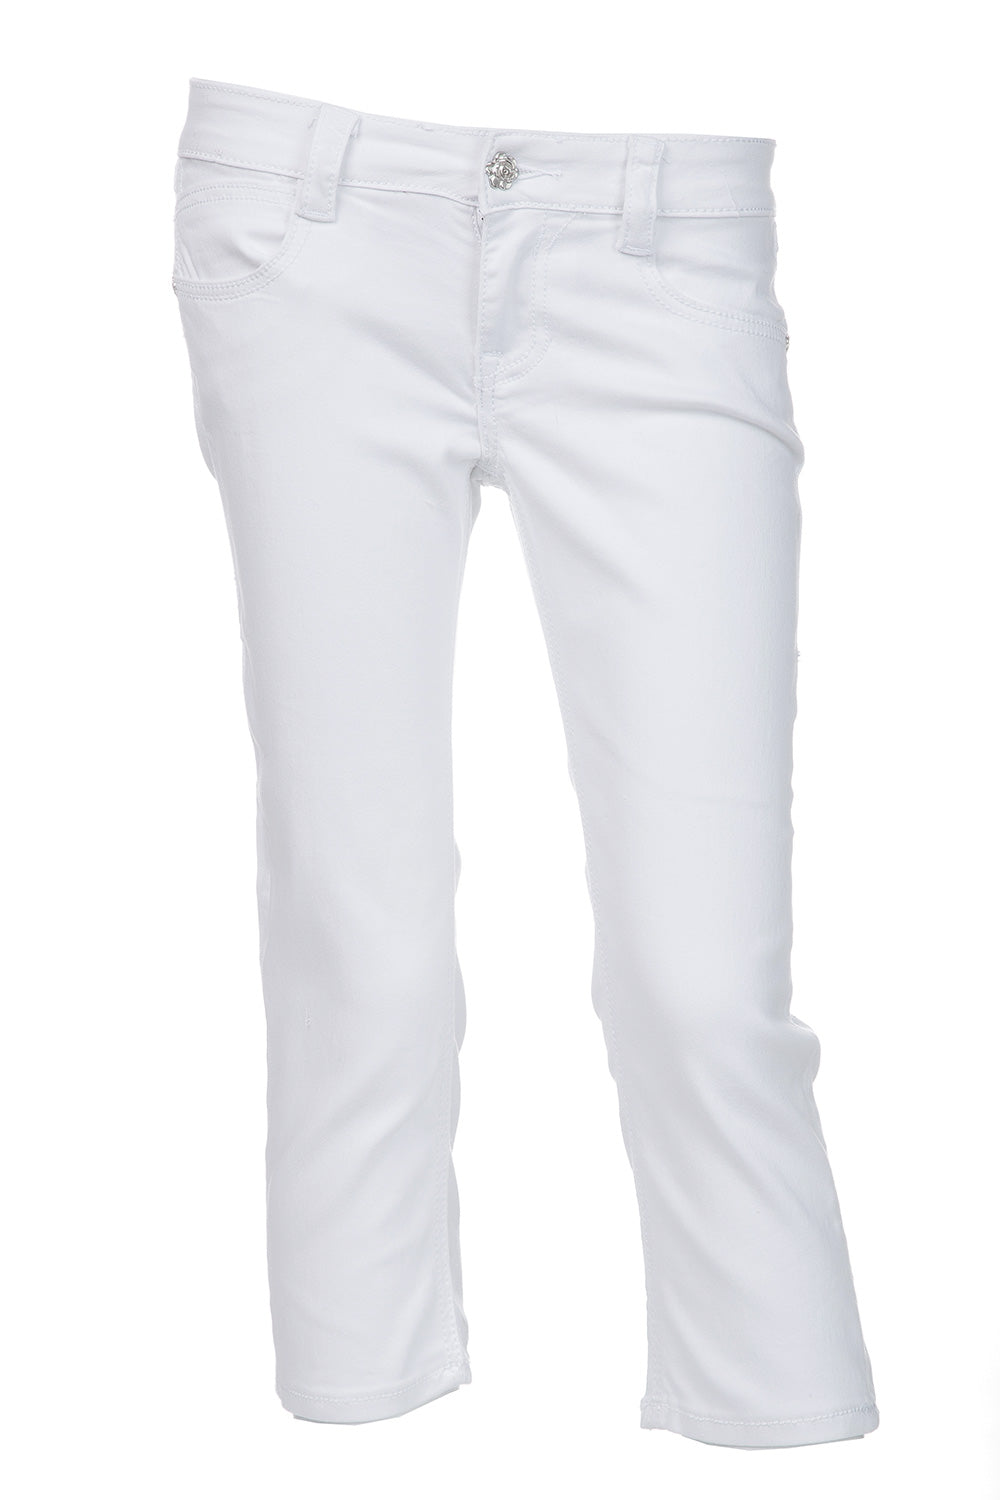 Type 4 Pure White Capri Pants